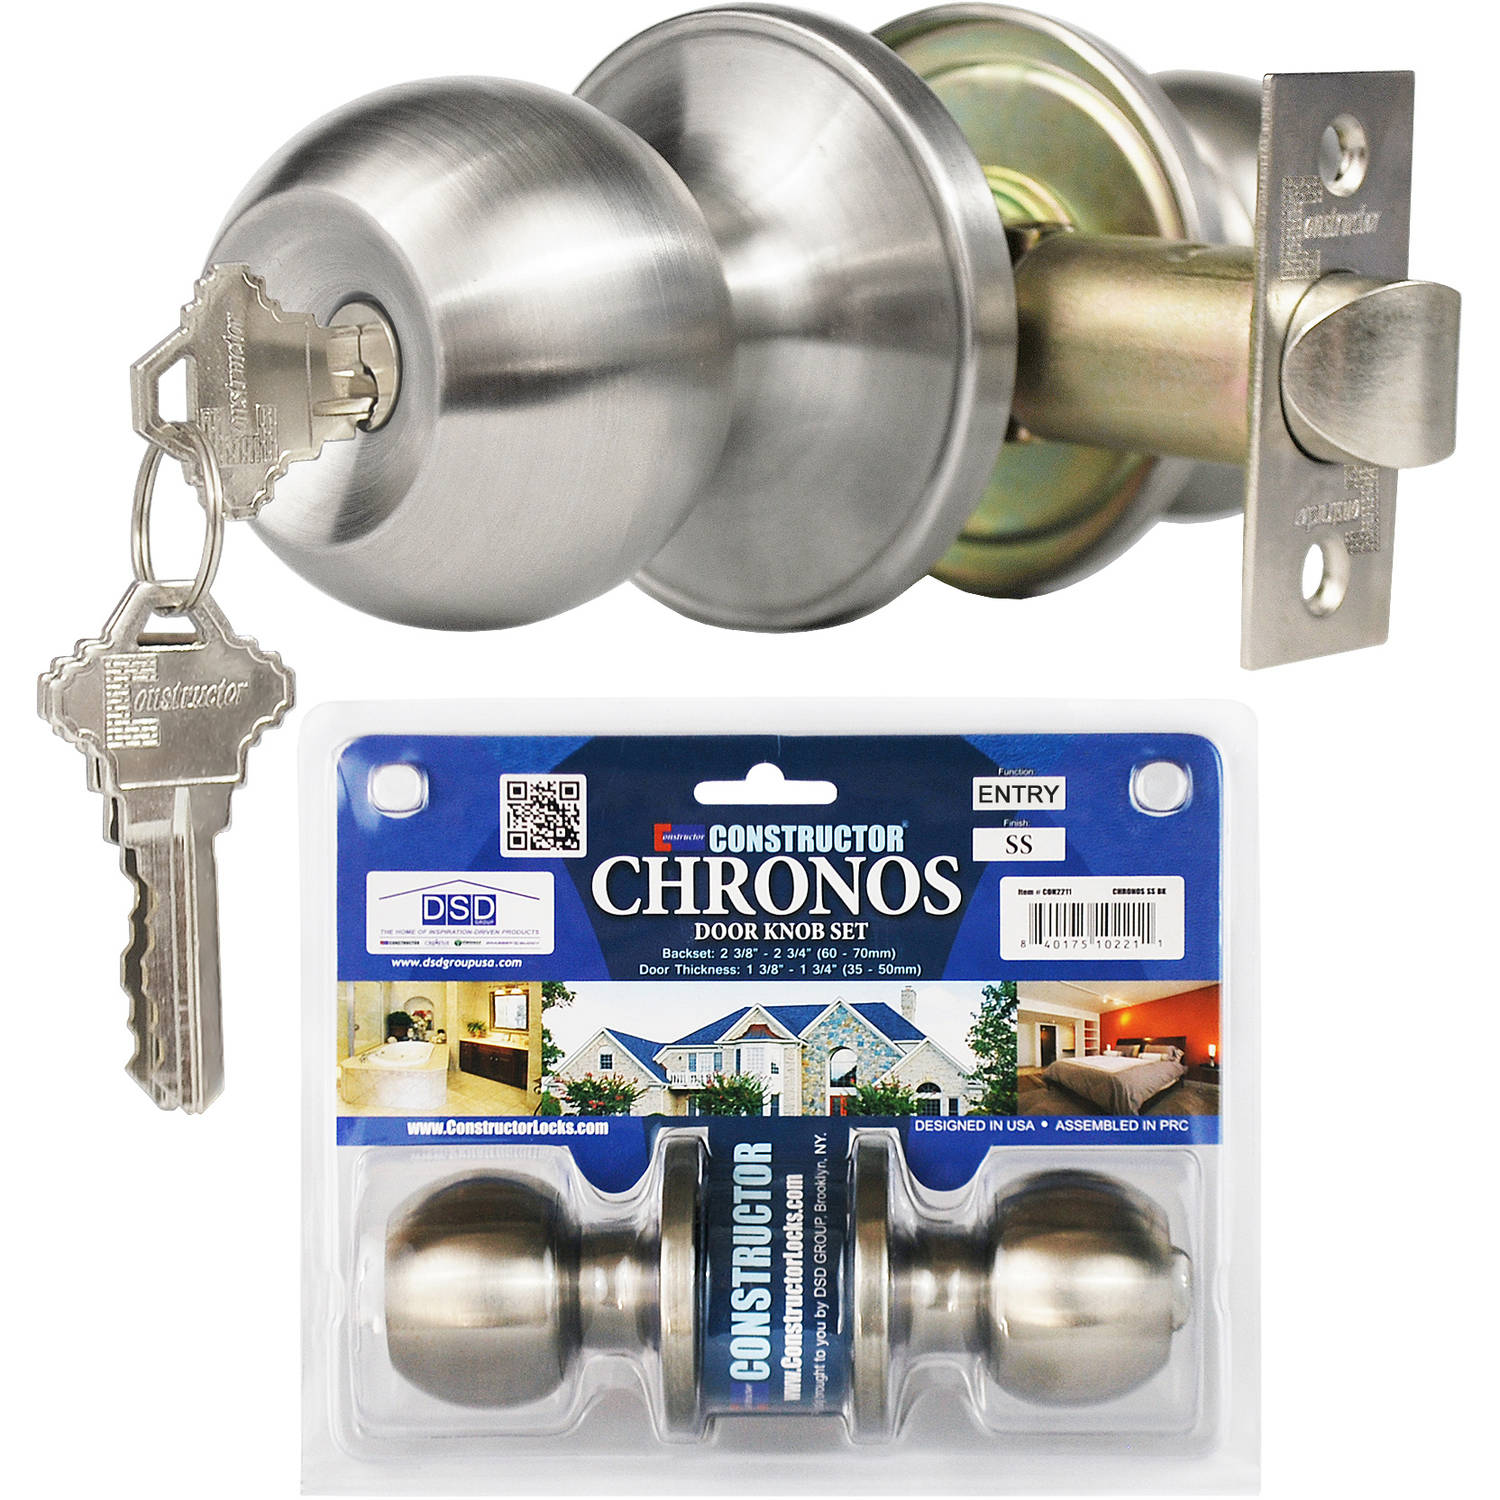 Constructor Chronos Entry Door Knob Handle Lock Set Stainless Steel Finish